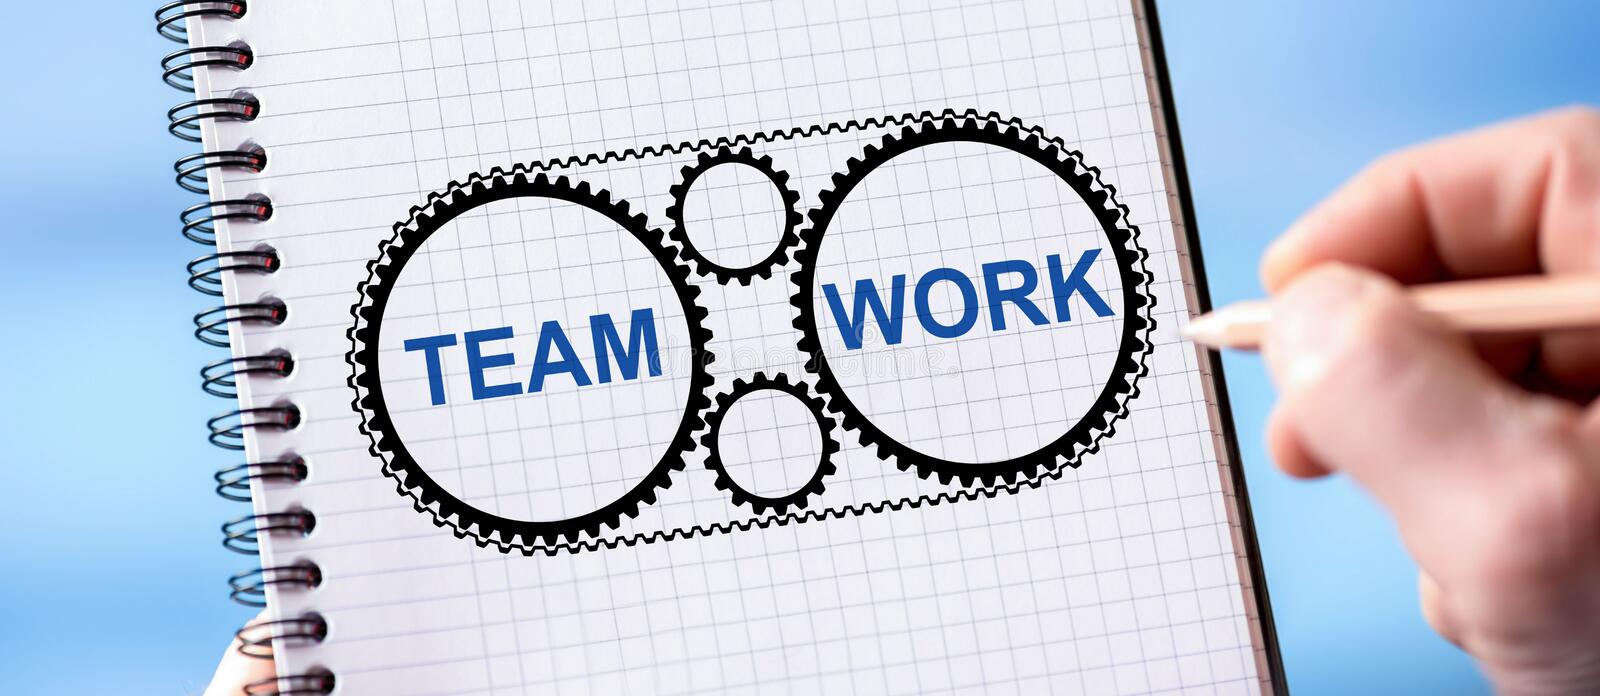 Teamwork concept on a notepad. Hand drawing teamwork concept on a notepad royalty free stock photography